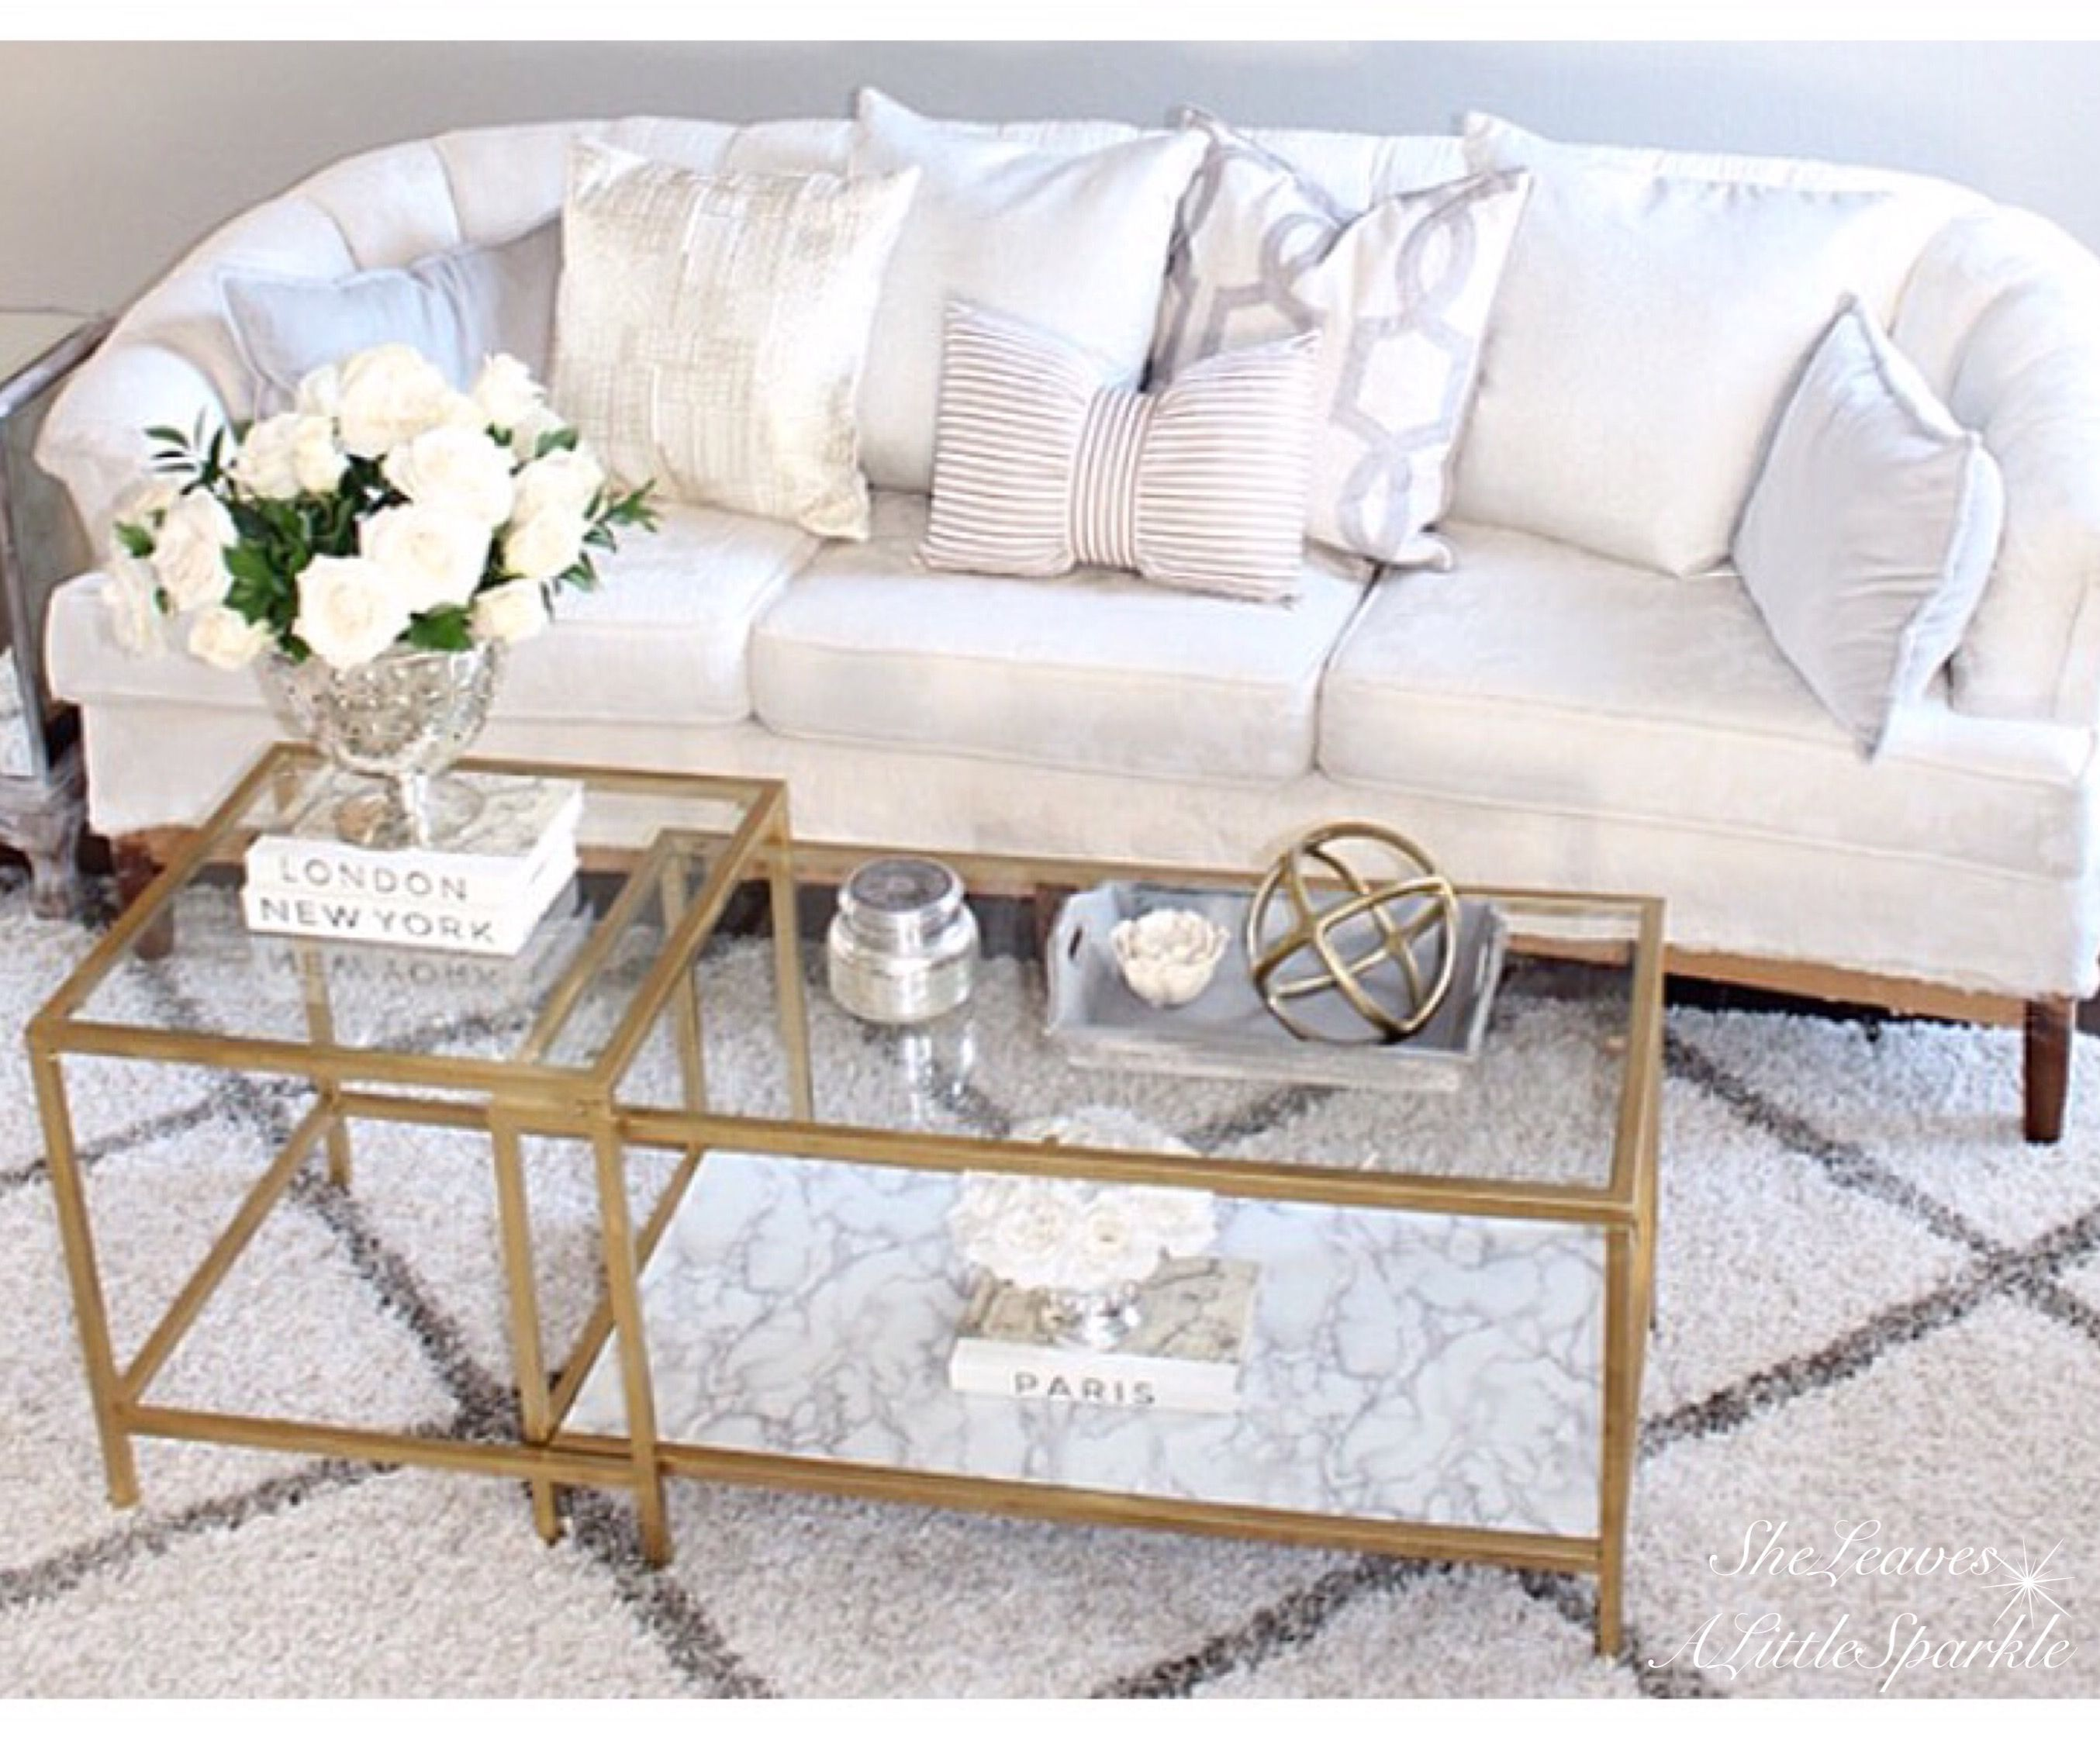 Ikea Marble Top Coffee Table: Most Popular Coffee Tables